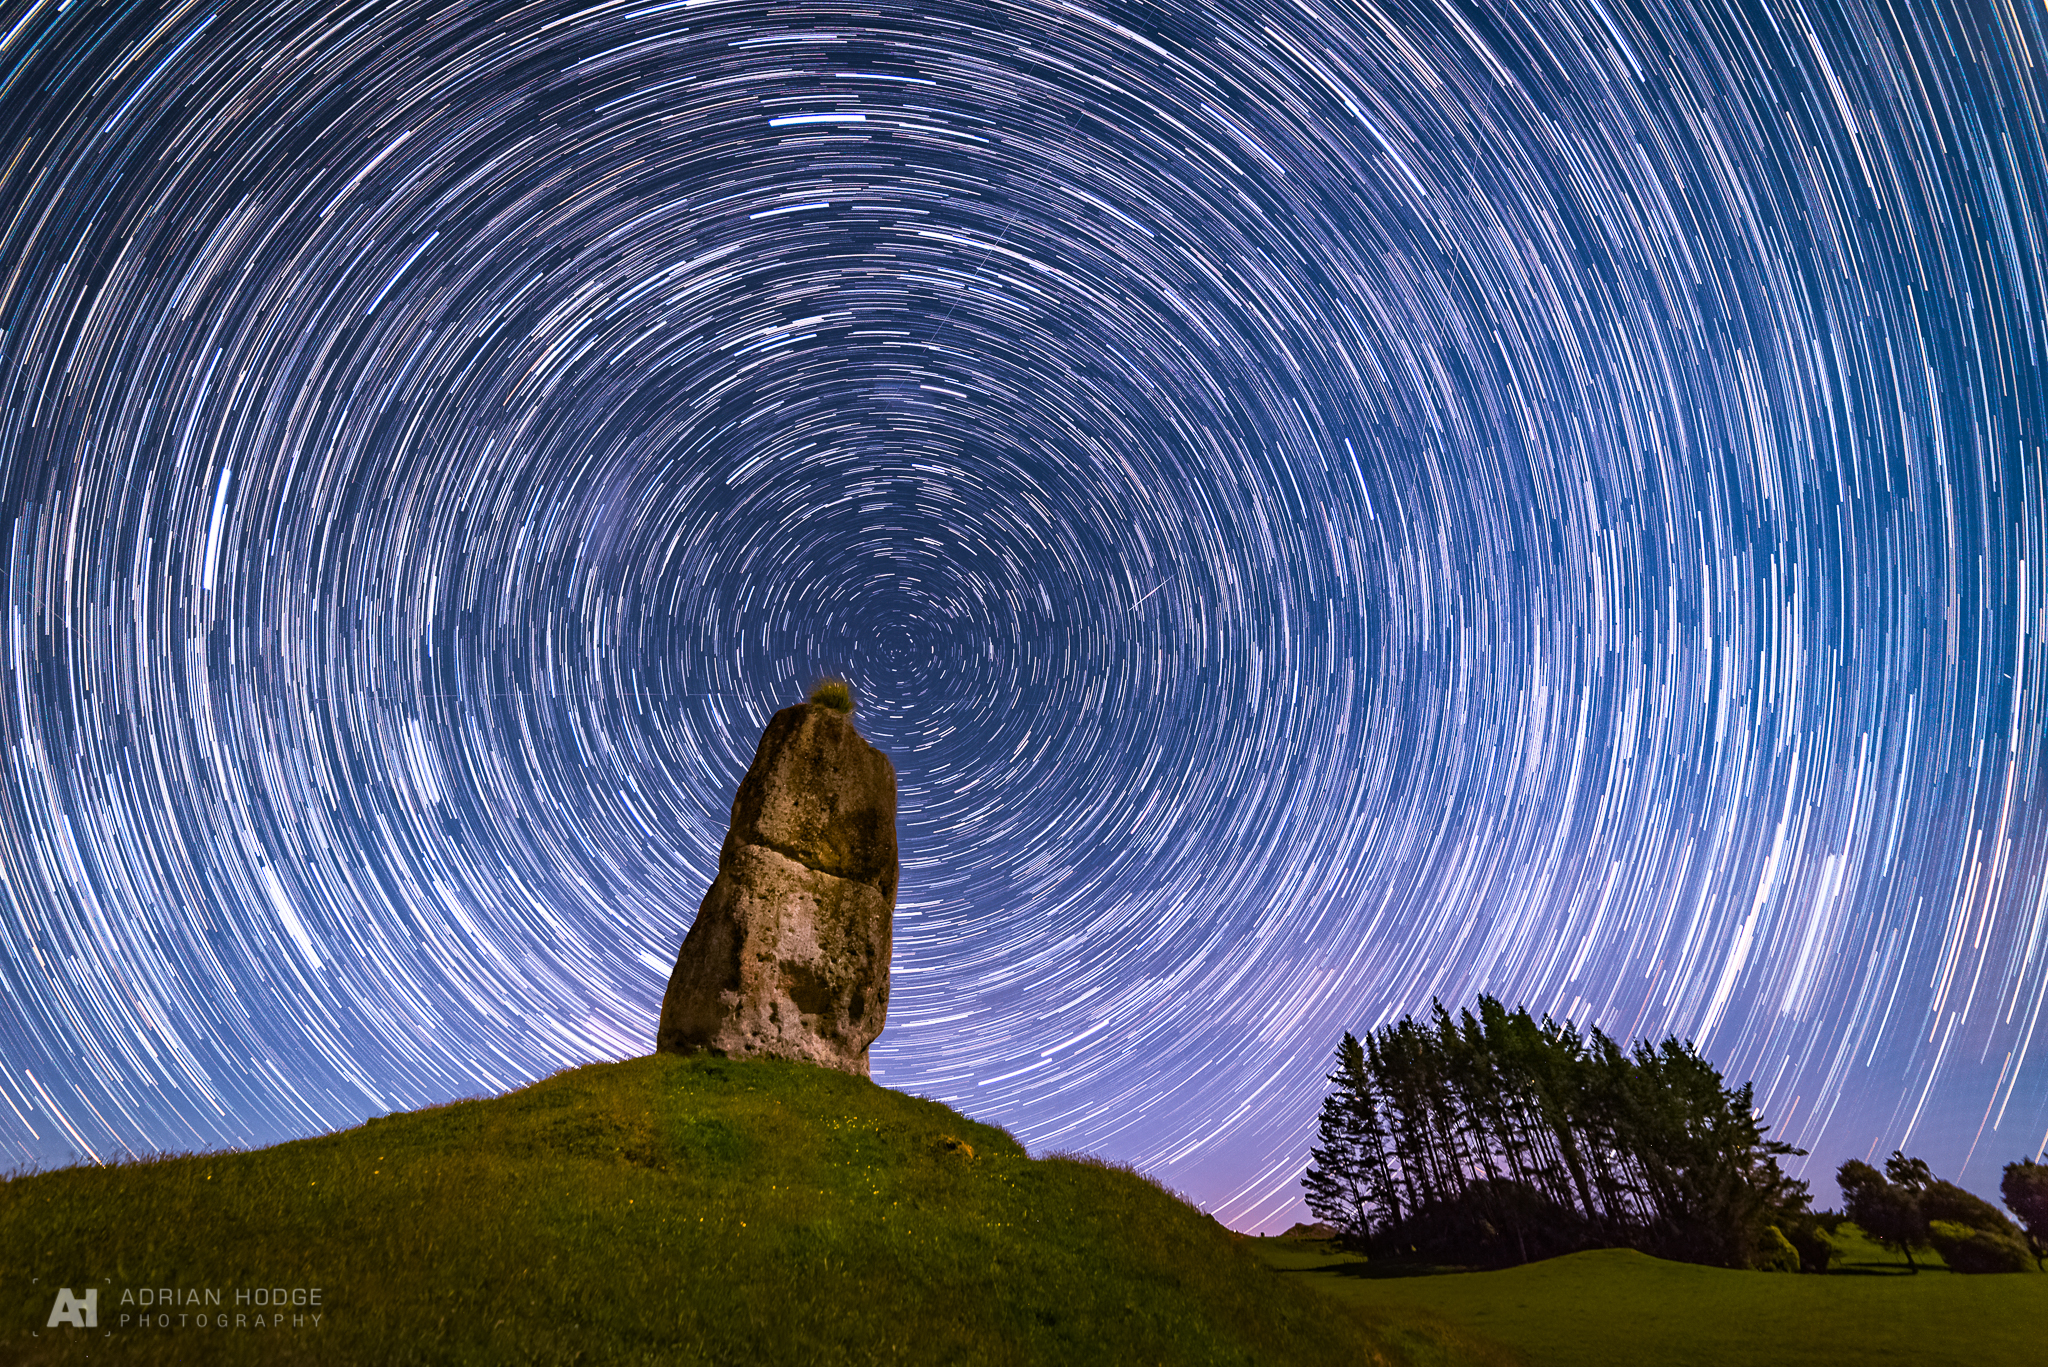 Star trails showing celestial South Pole over New Zealand